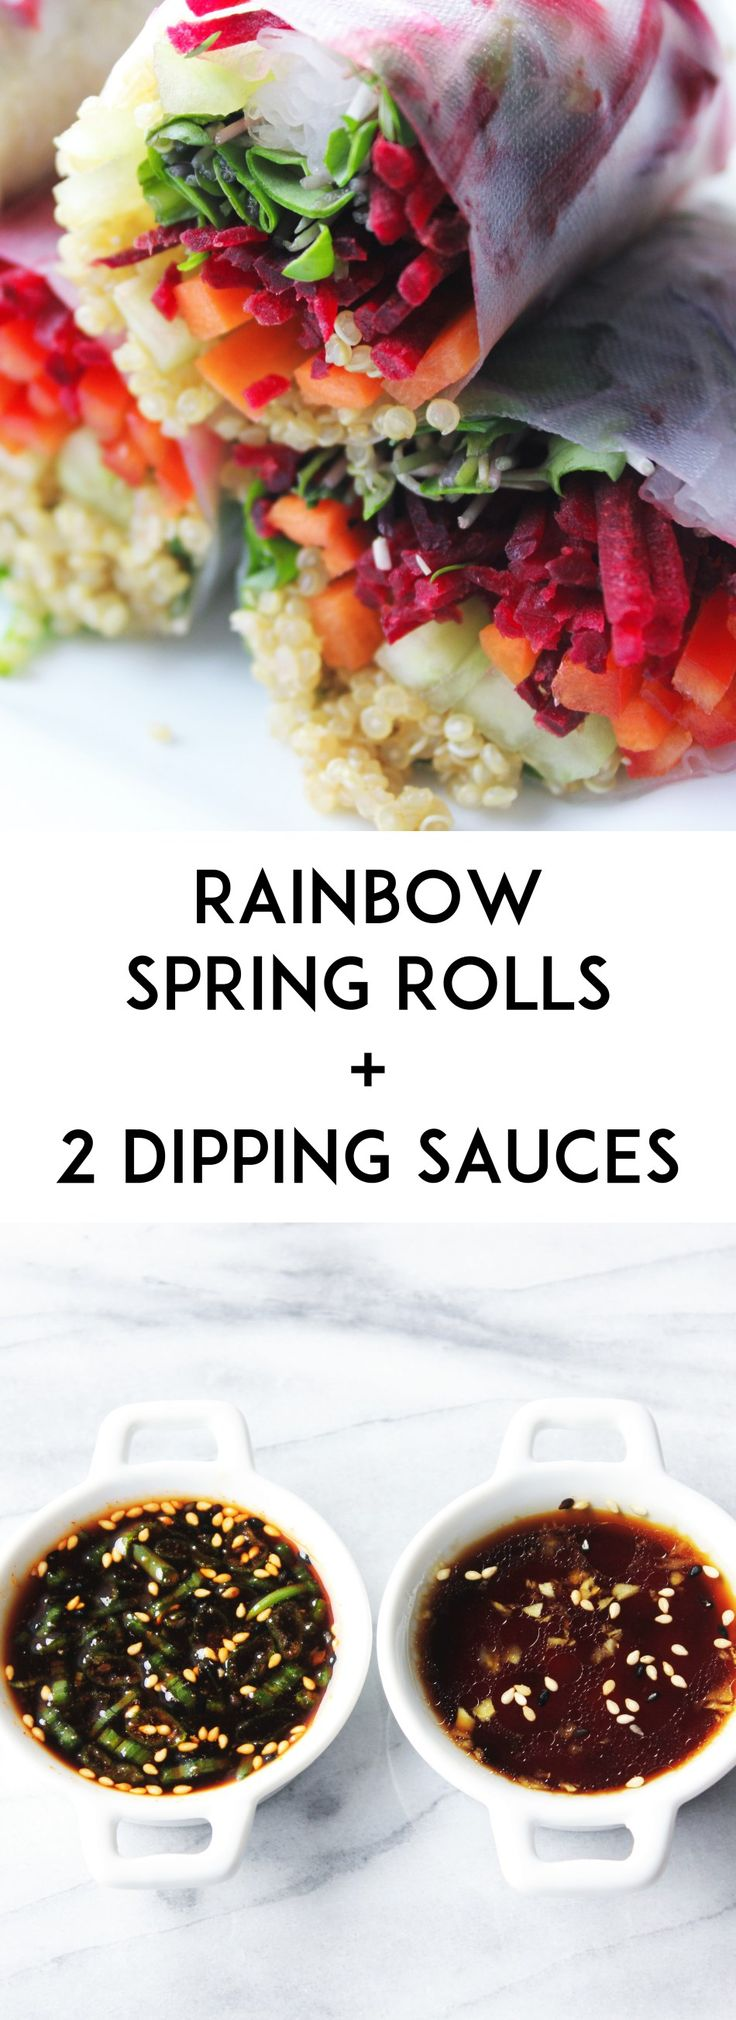 Rainbow Spring Rolls with 2 dipping sauces- A quick, healthy vegetarian dinner. Spring rolls filled with quinoa, carrots, beets, cucumber and greens. Dip it in a maple sesame sauce or a spicy soy sauce.